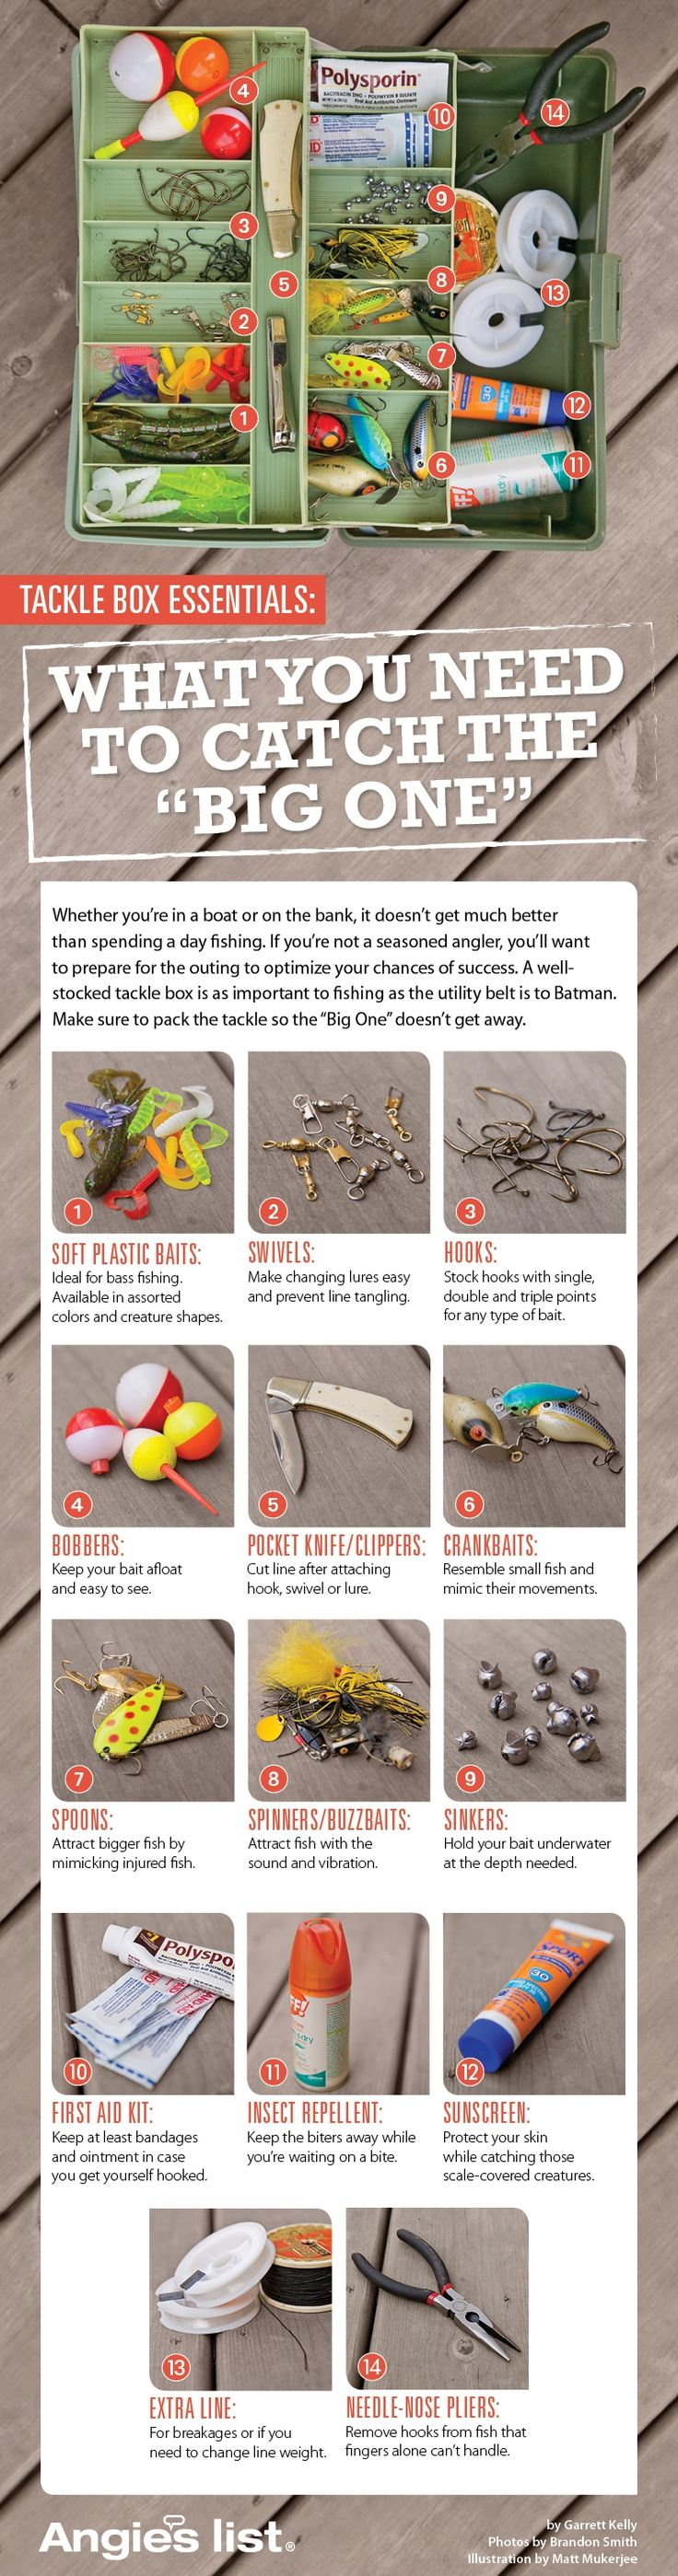 Essential gear for your tackle box